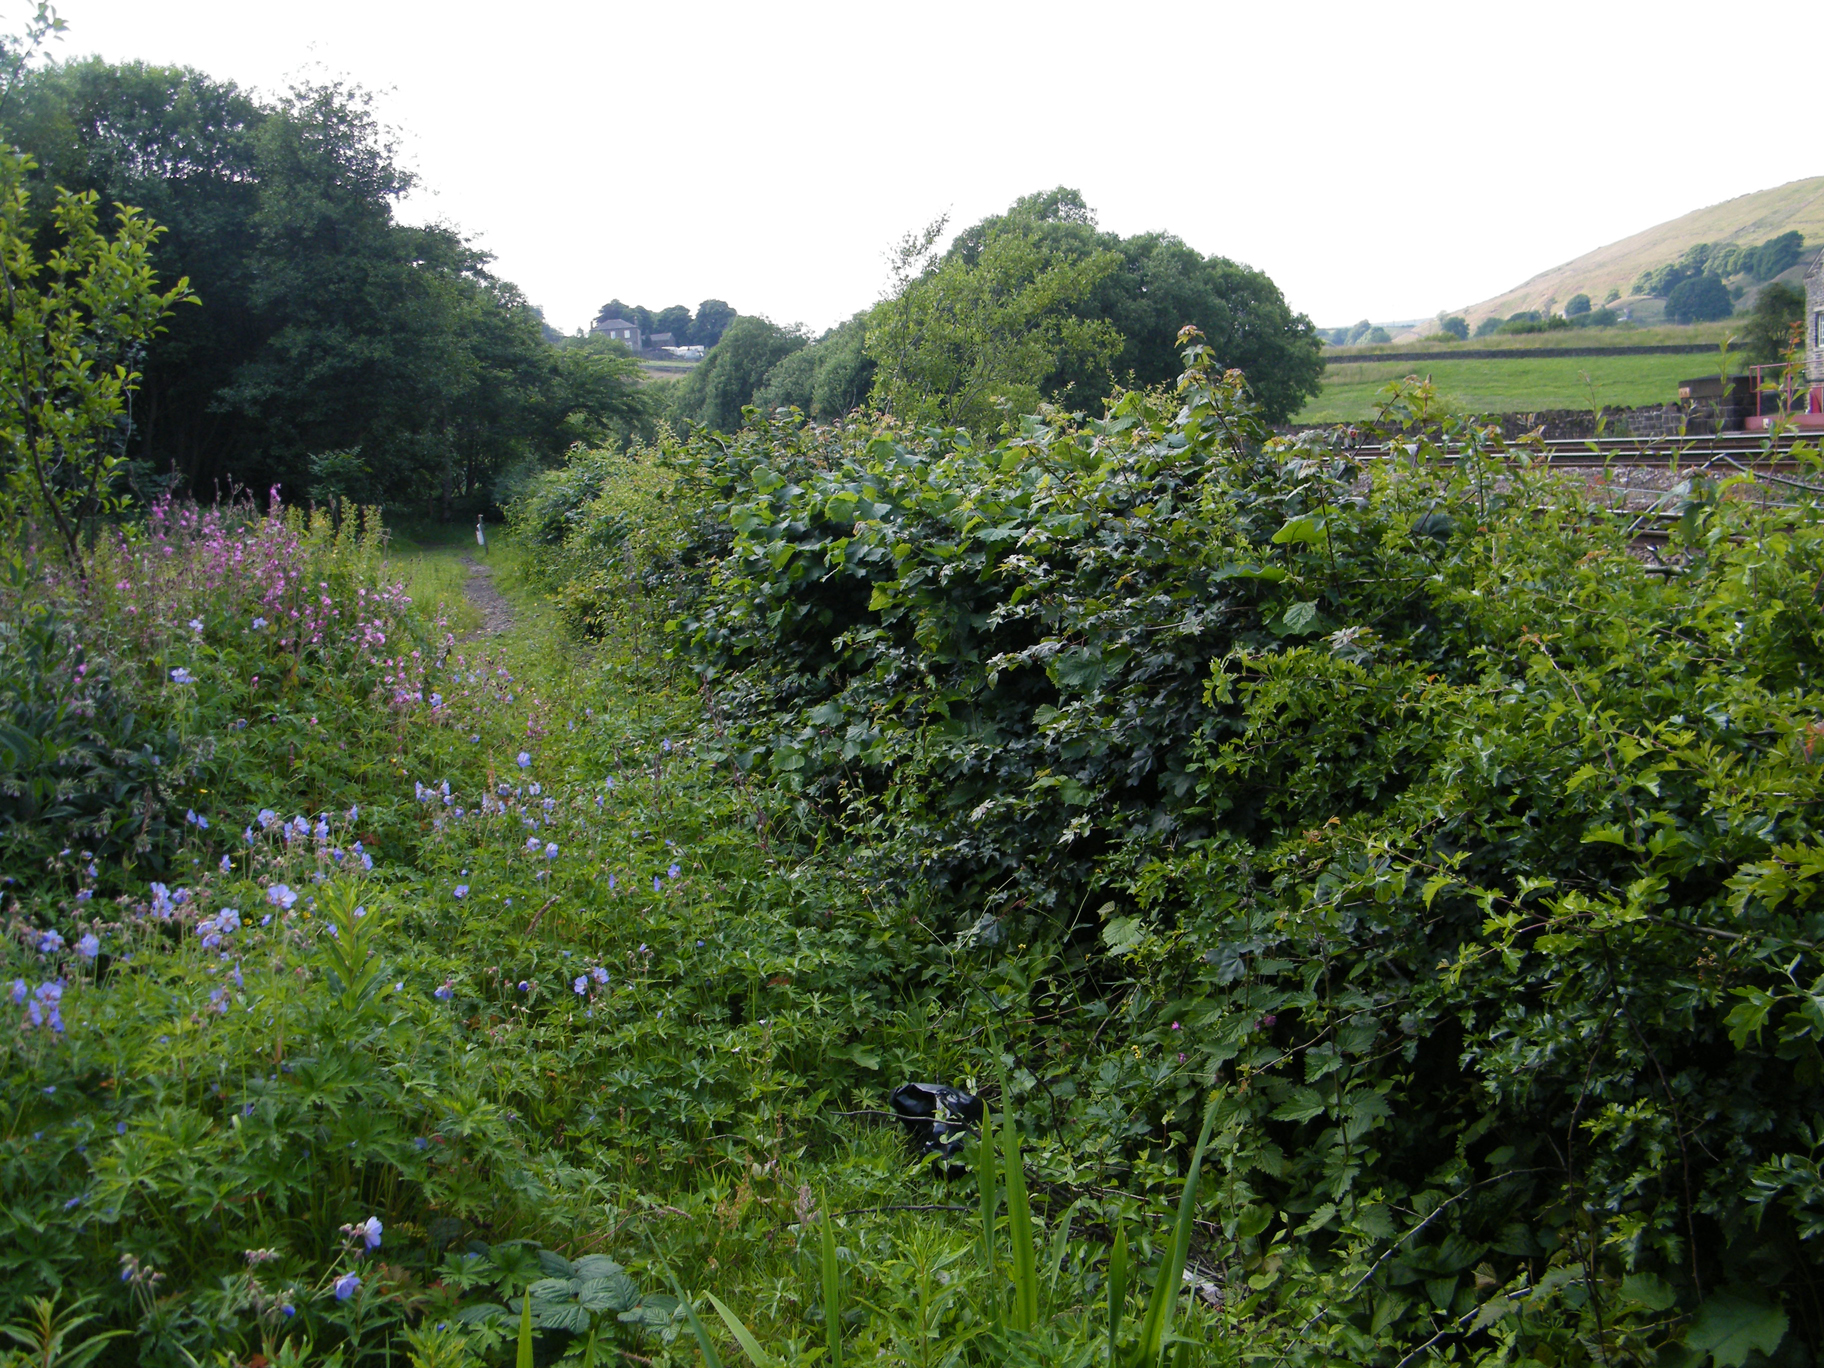 Hedge Laying Wild Service